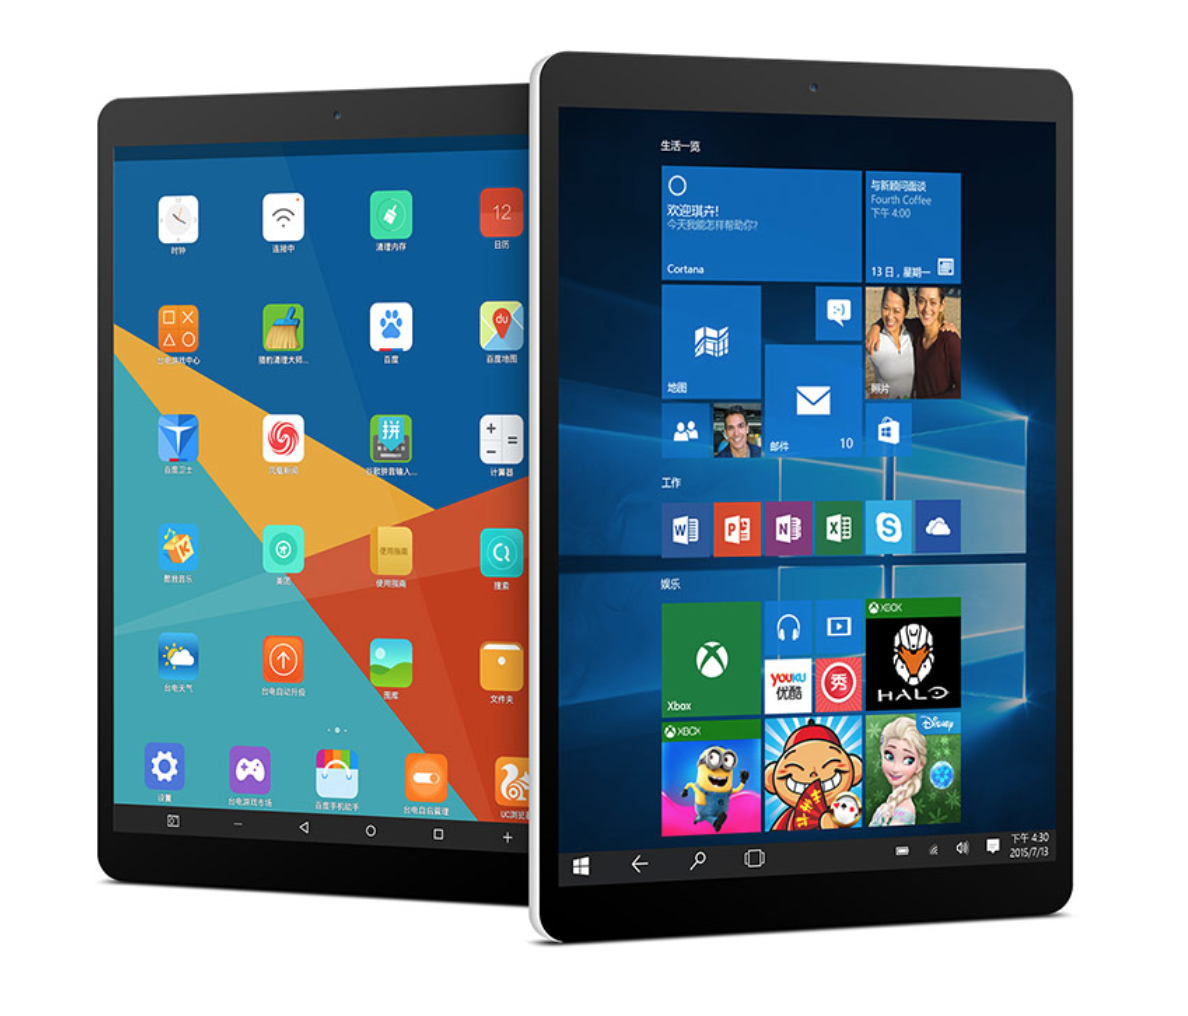 Teclast X89 Kindow E-kitap Okuyucu 7.5 inç Çift OS Windows 10 & Android 4.4 Intel Bay Trail Z3735F 2G + 32G Quad Core Tablet PC